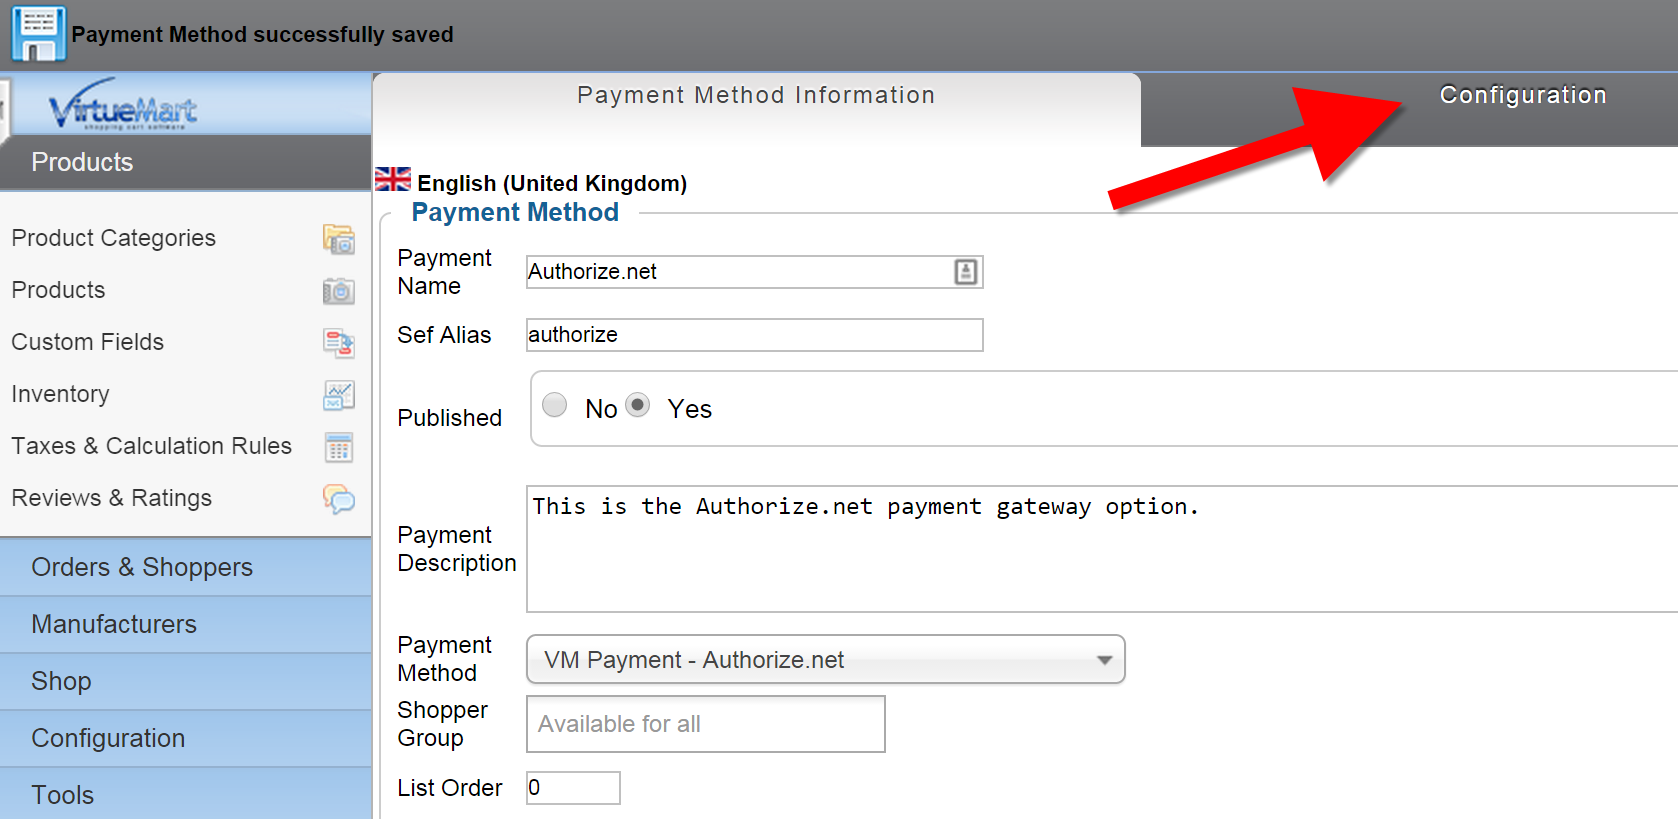 Configuring Auth in VM